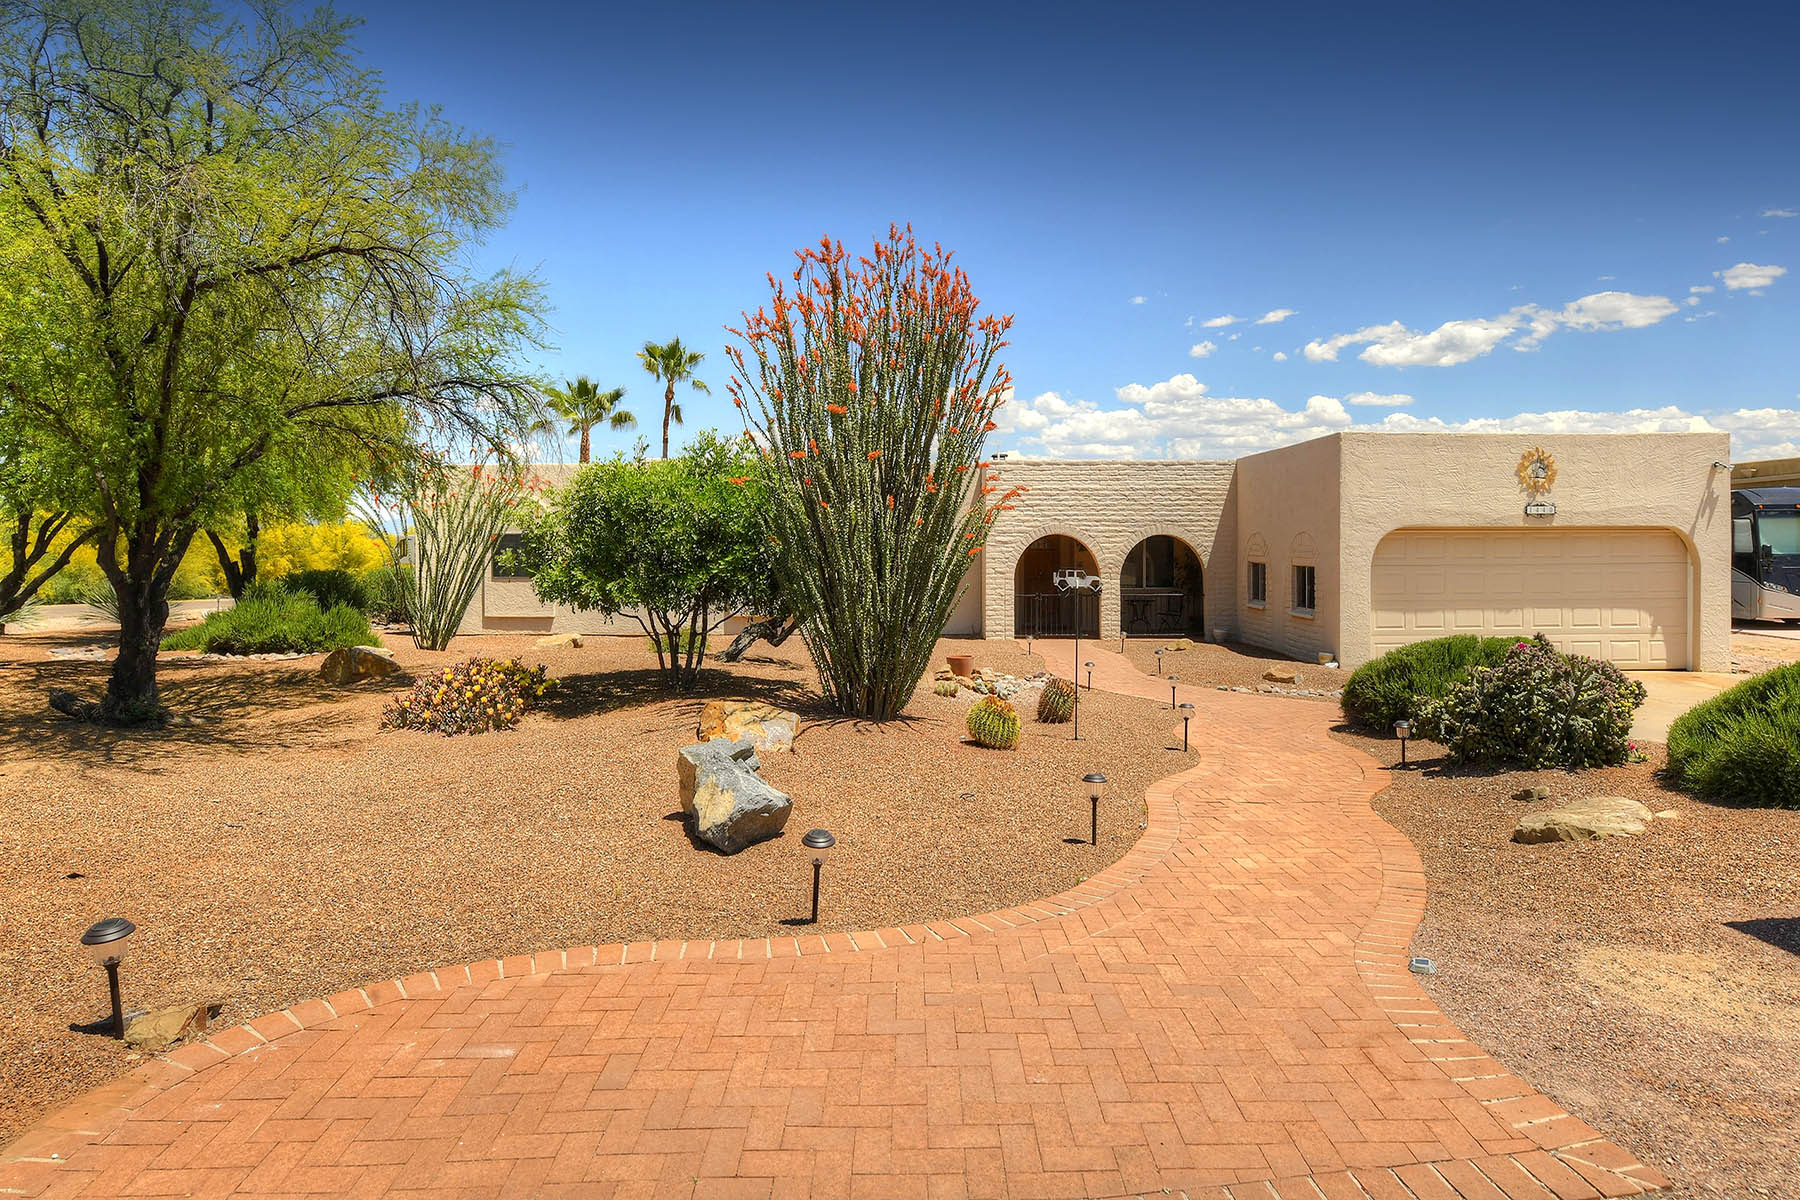 Casa unifamiliar en venta en/de 1440 N. La Luna, Green Valley, Arizona ,85614  , EUA